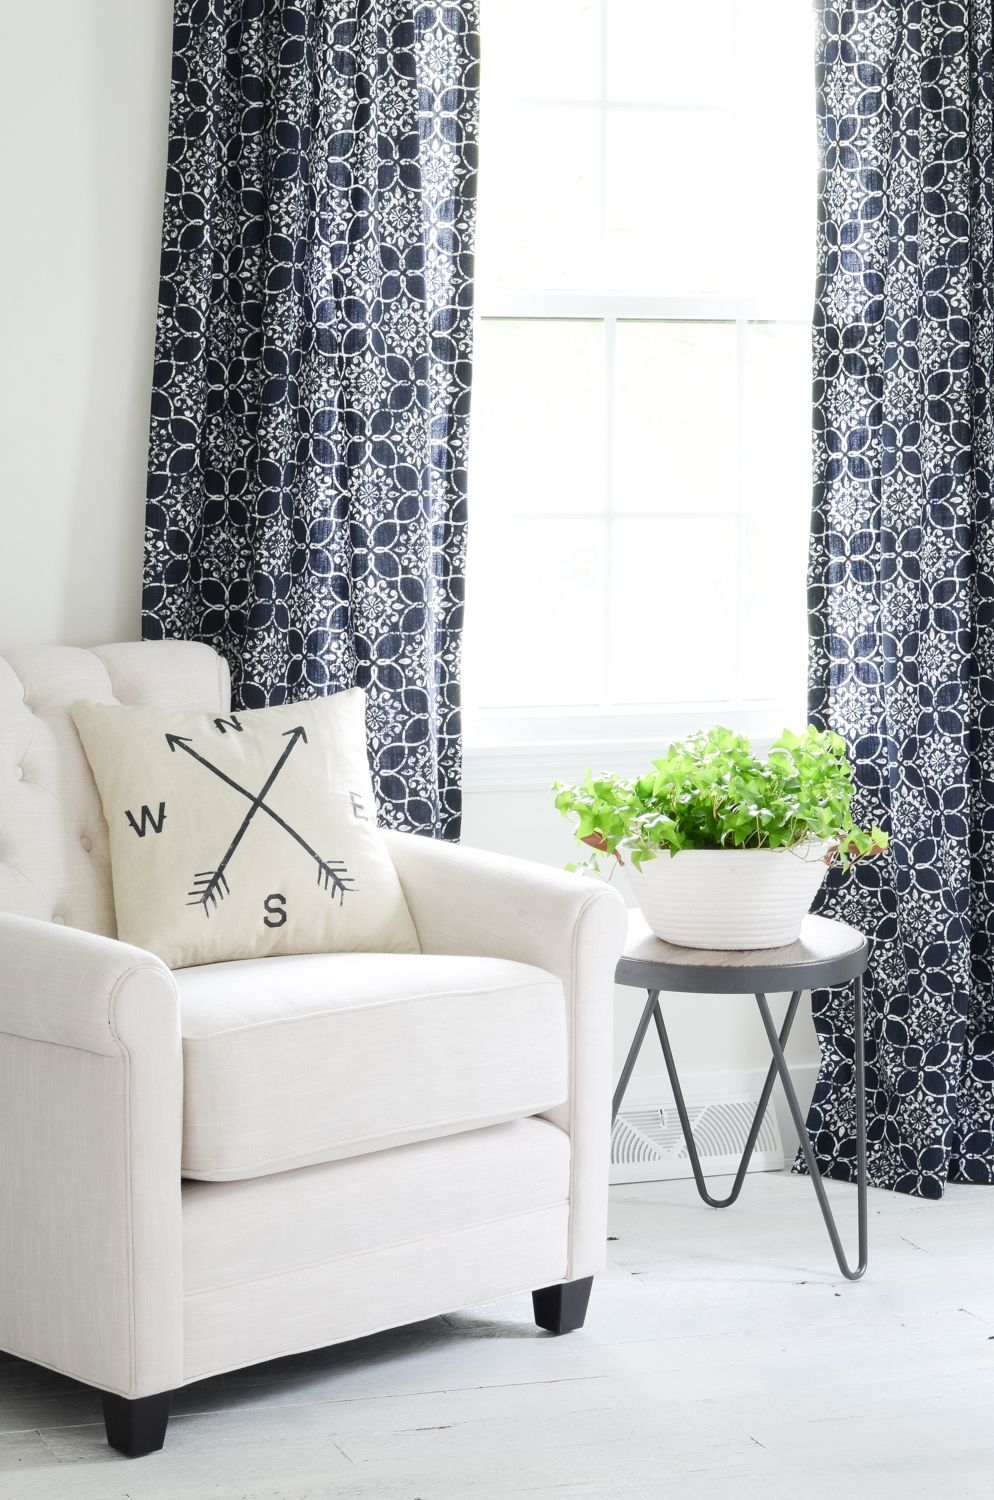 10+ Stunning Pictures Of Living Room Curtains